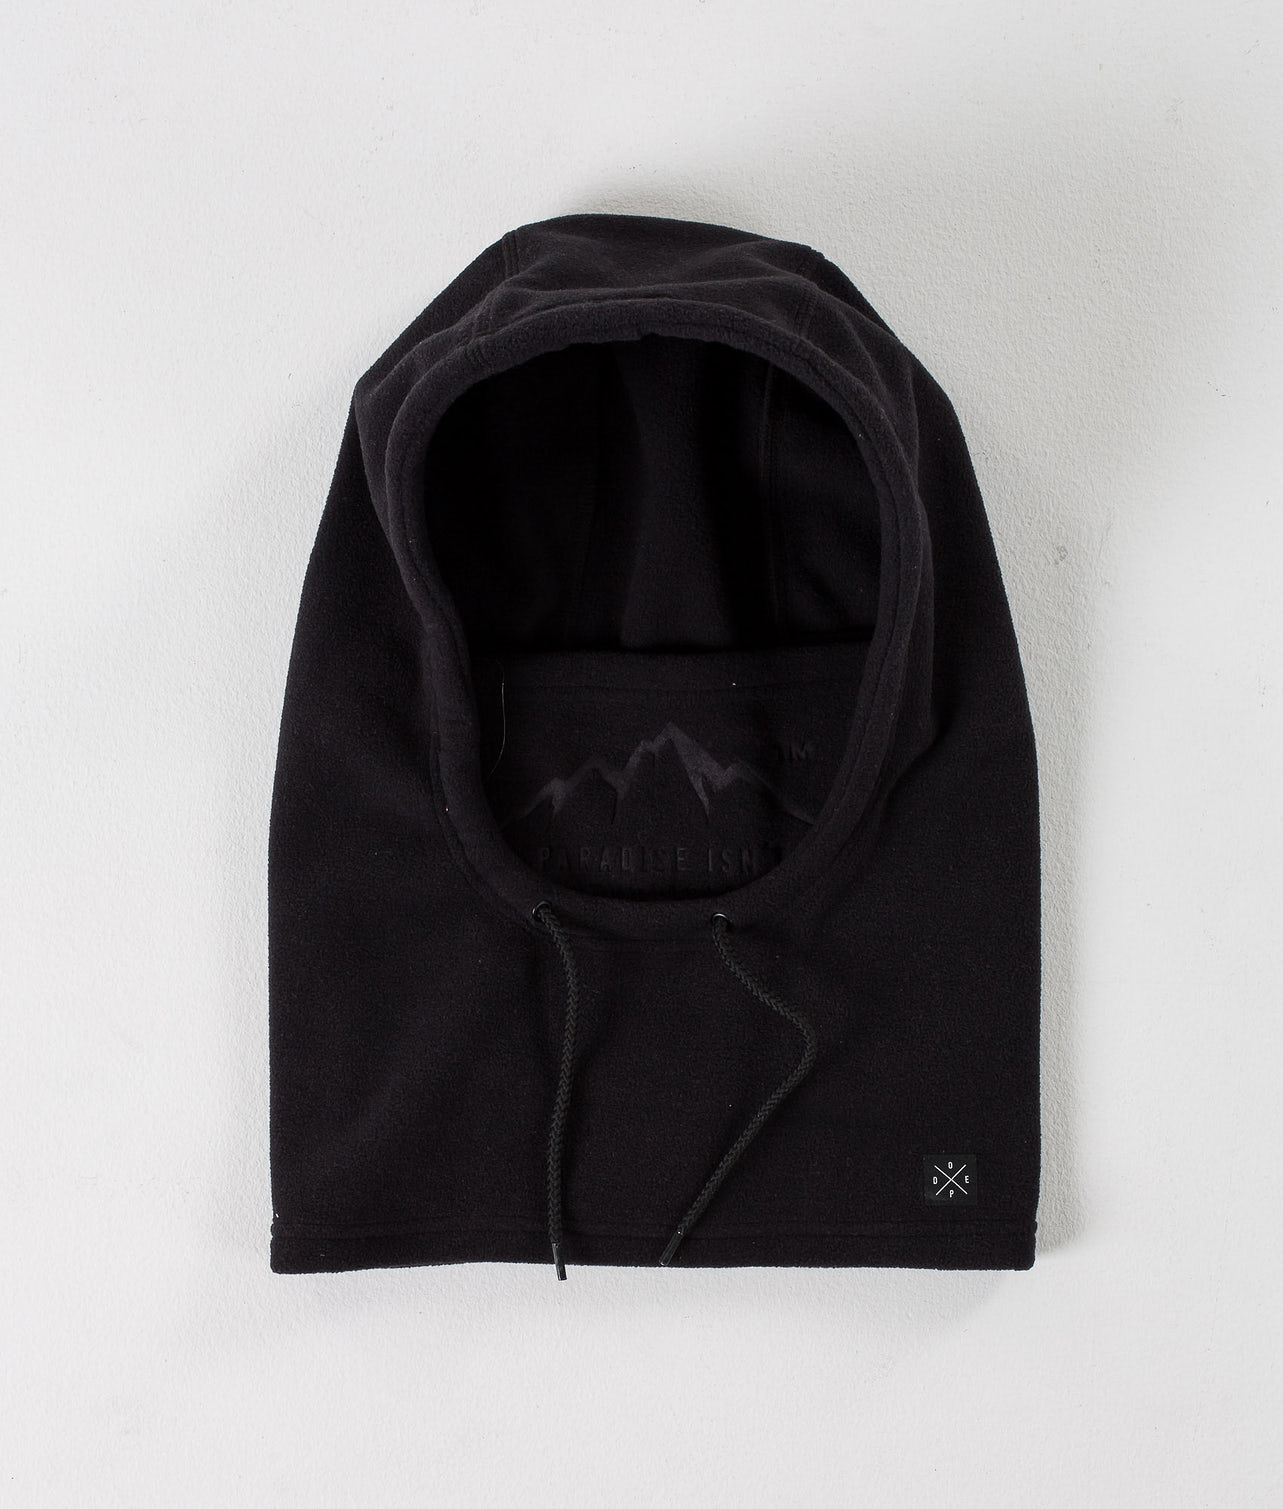 Dope Cozy Hood Facemask Black